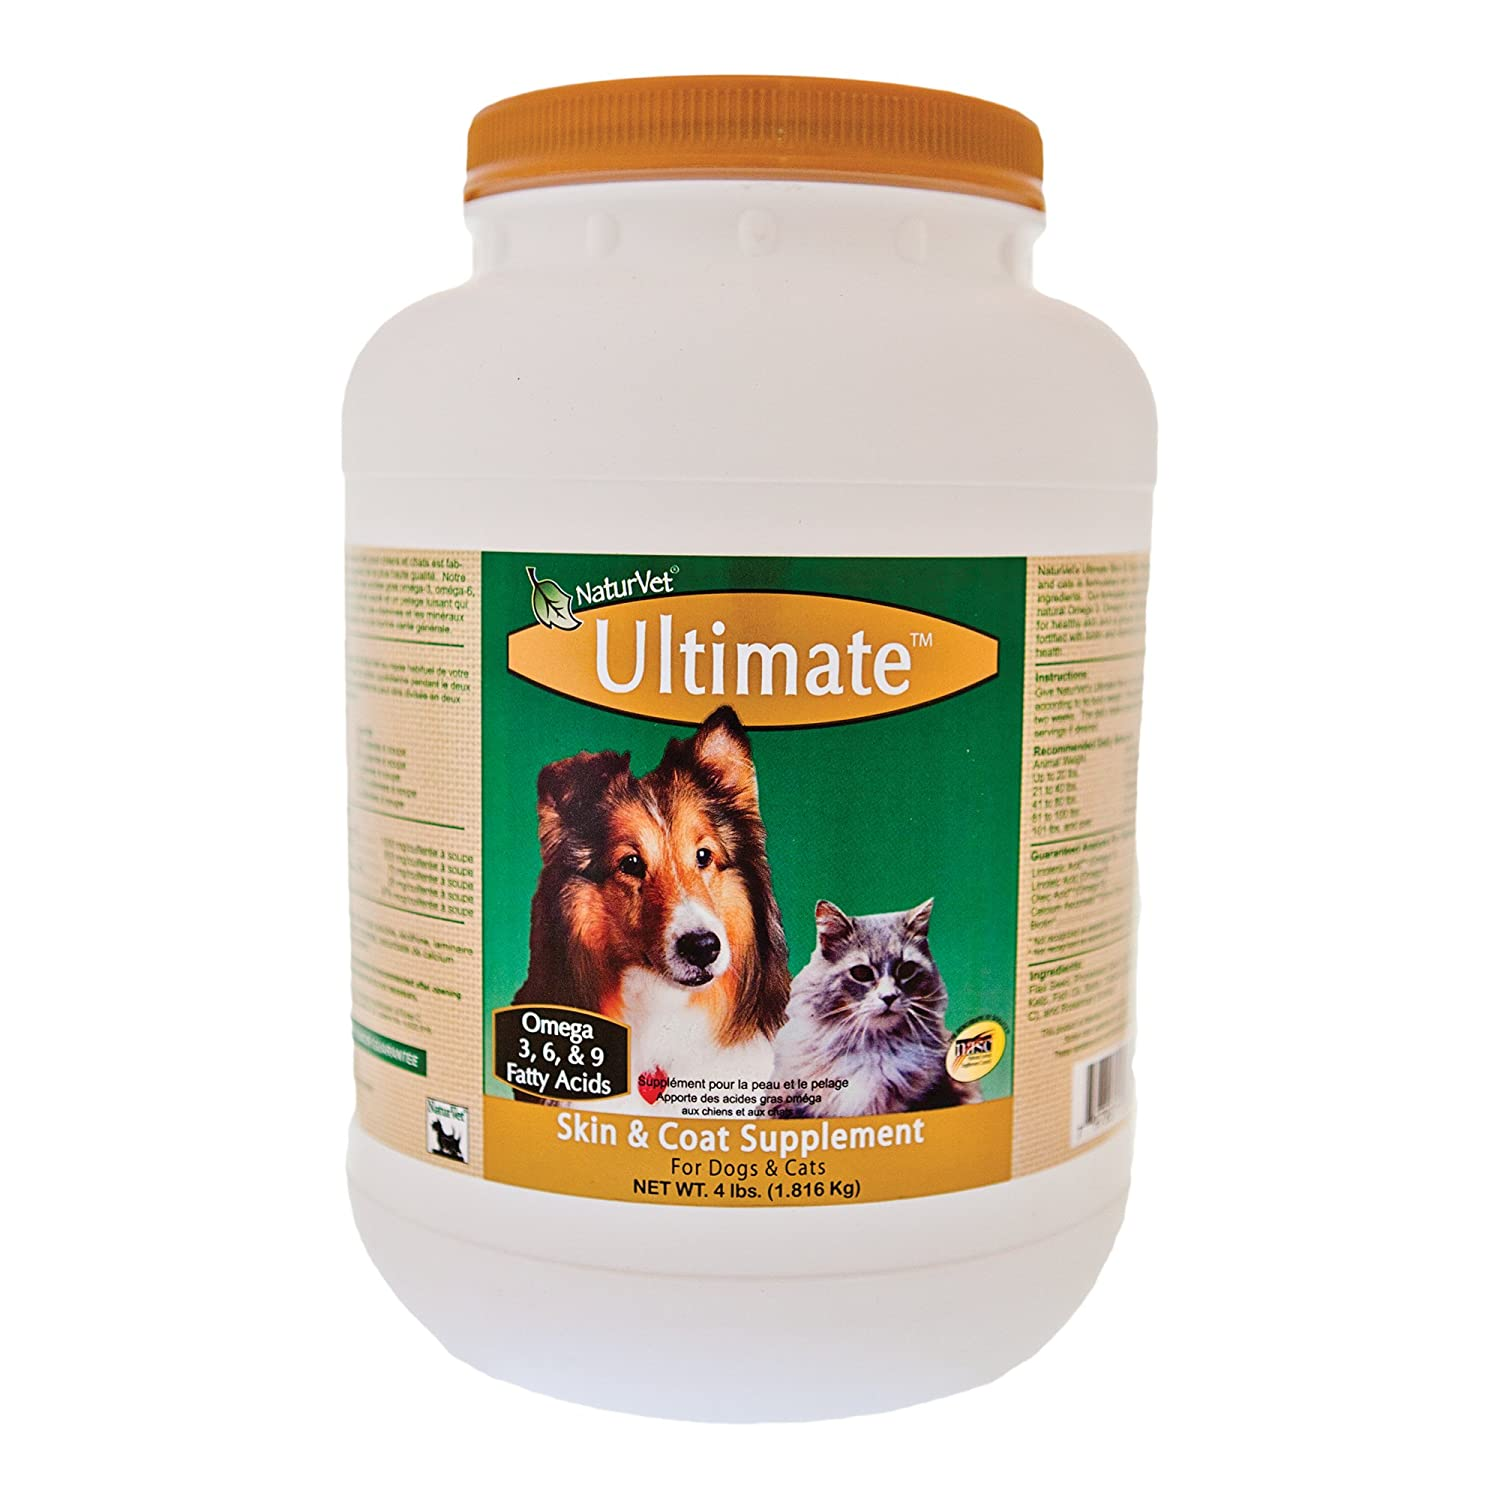 NaturVet Ultimate Skin & Coat Supplement Powder 4lb (Jar) for Dogs and Cats